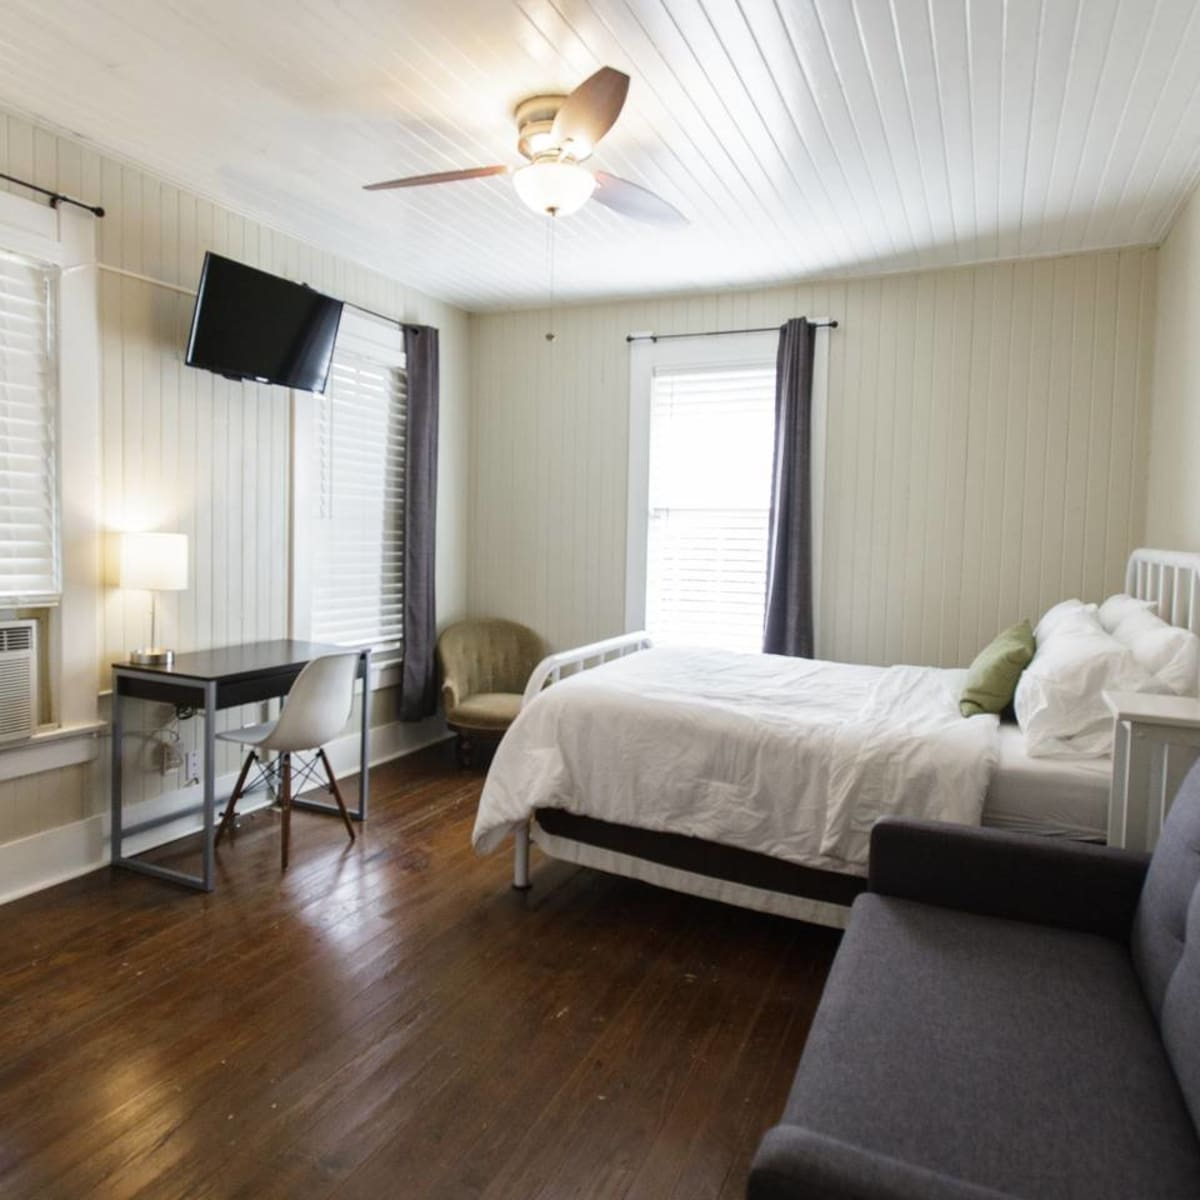 Beaumont Wish-listed Airbnb